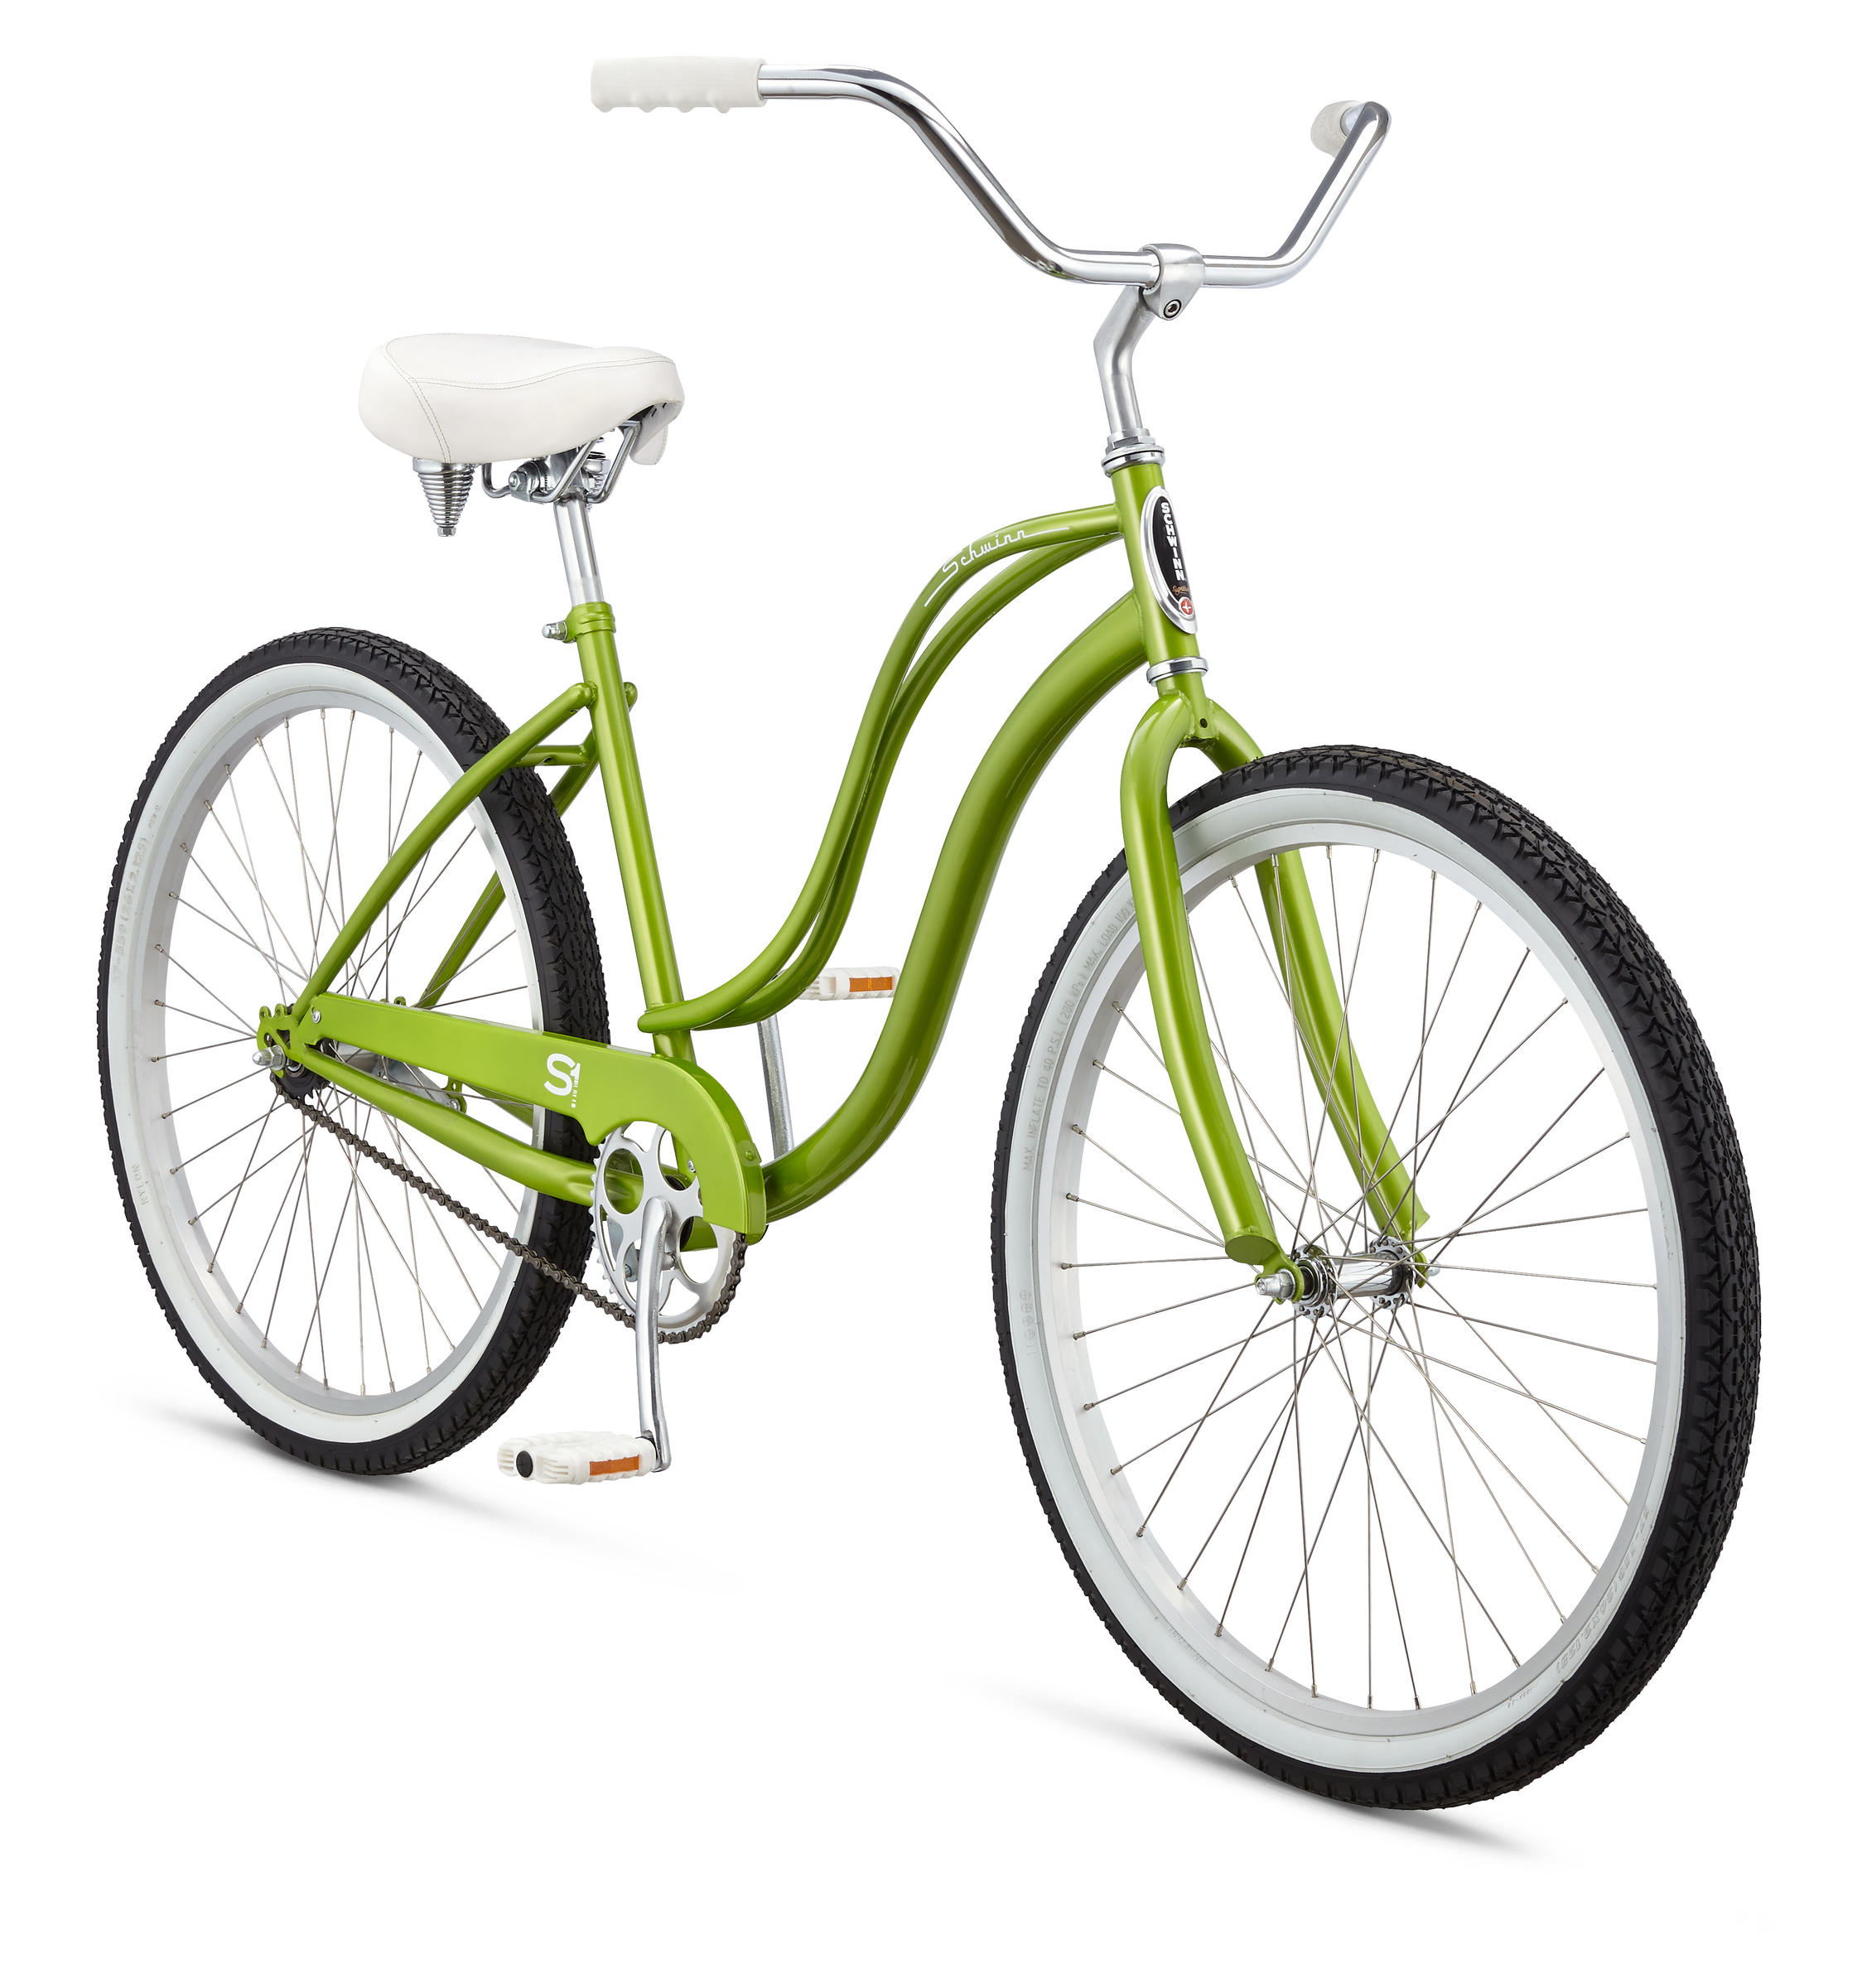 6b672d97a3c Schwinn S1 - Women's - Bicycle Source US serving the Tri State area  973-300-2453